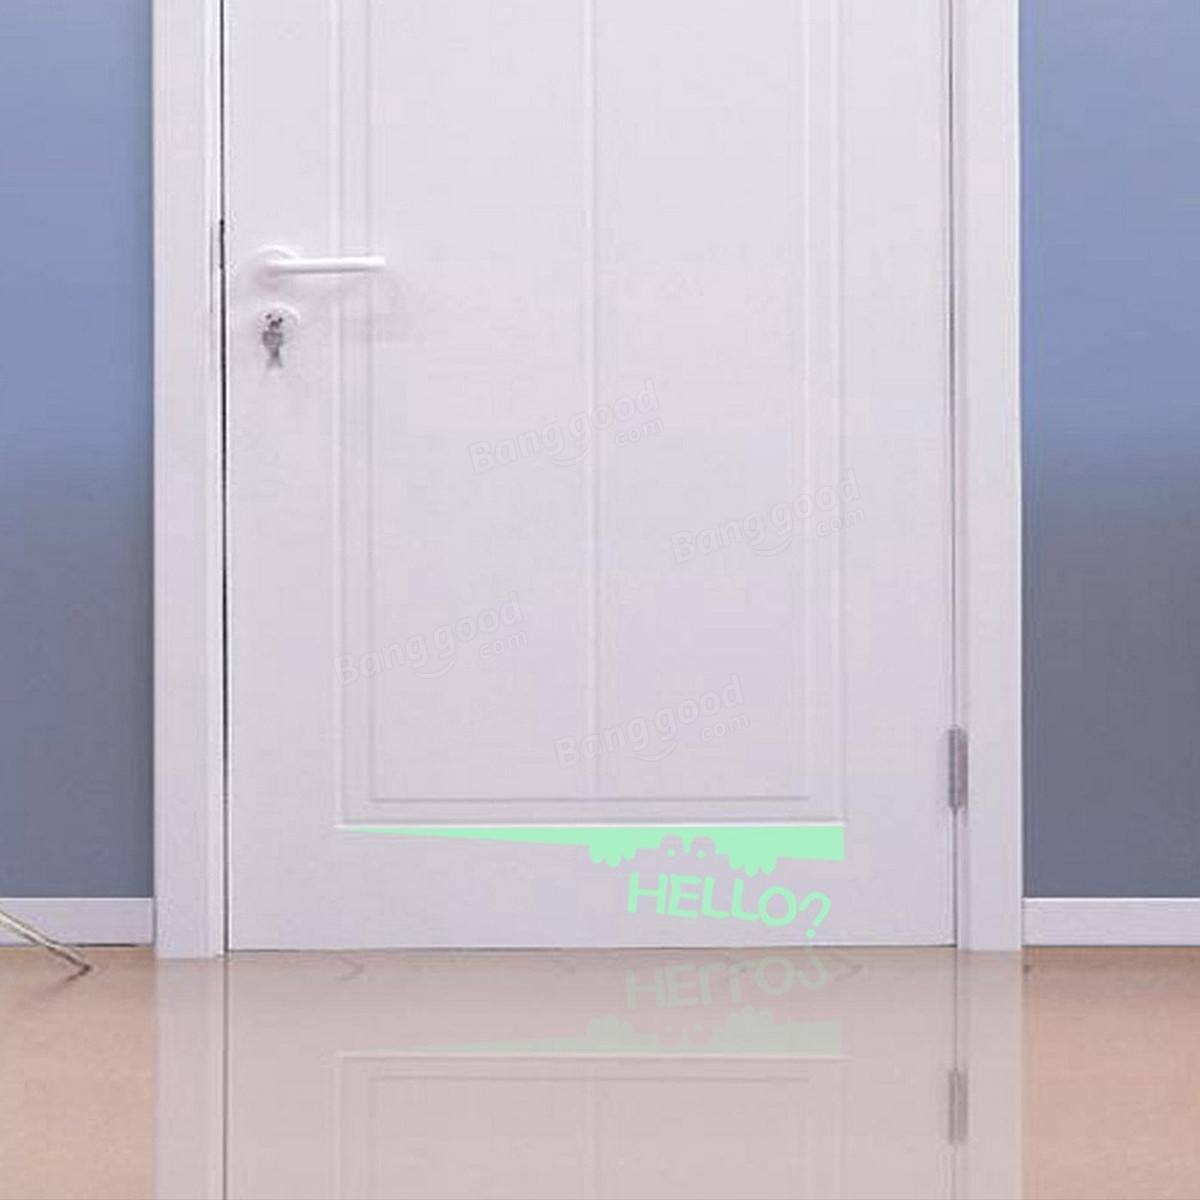 Luminous Toilet Seat Door Wall Sticker Vinyl Decal Bathroom Decor